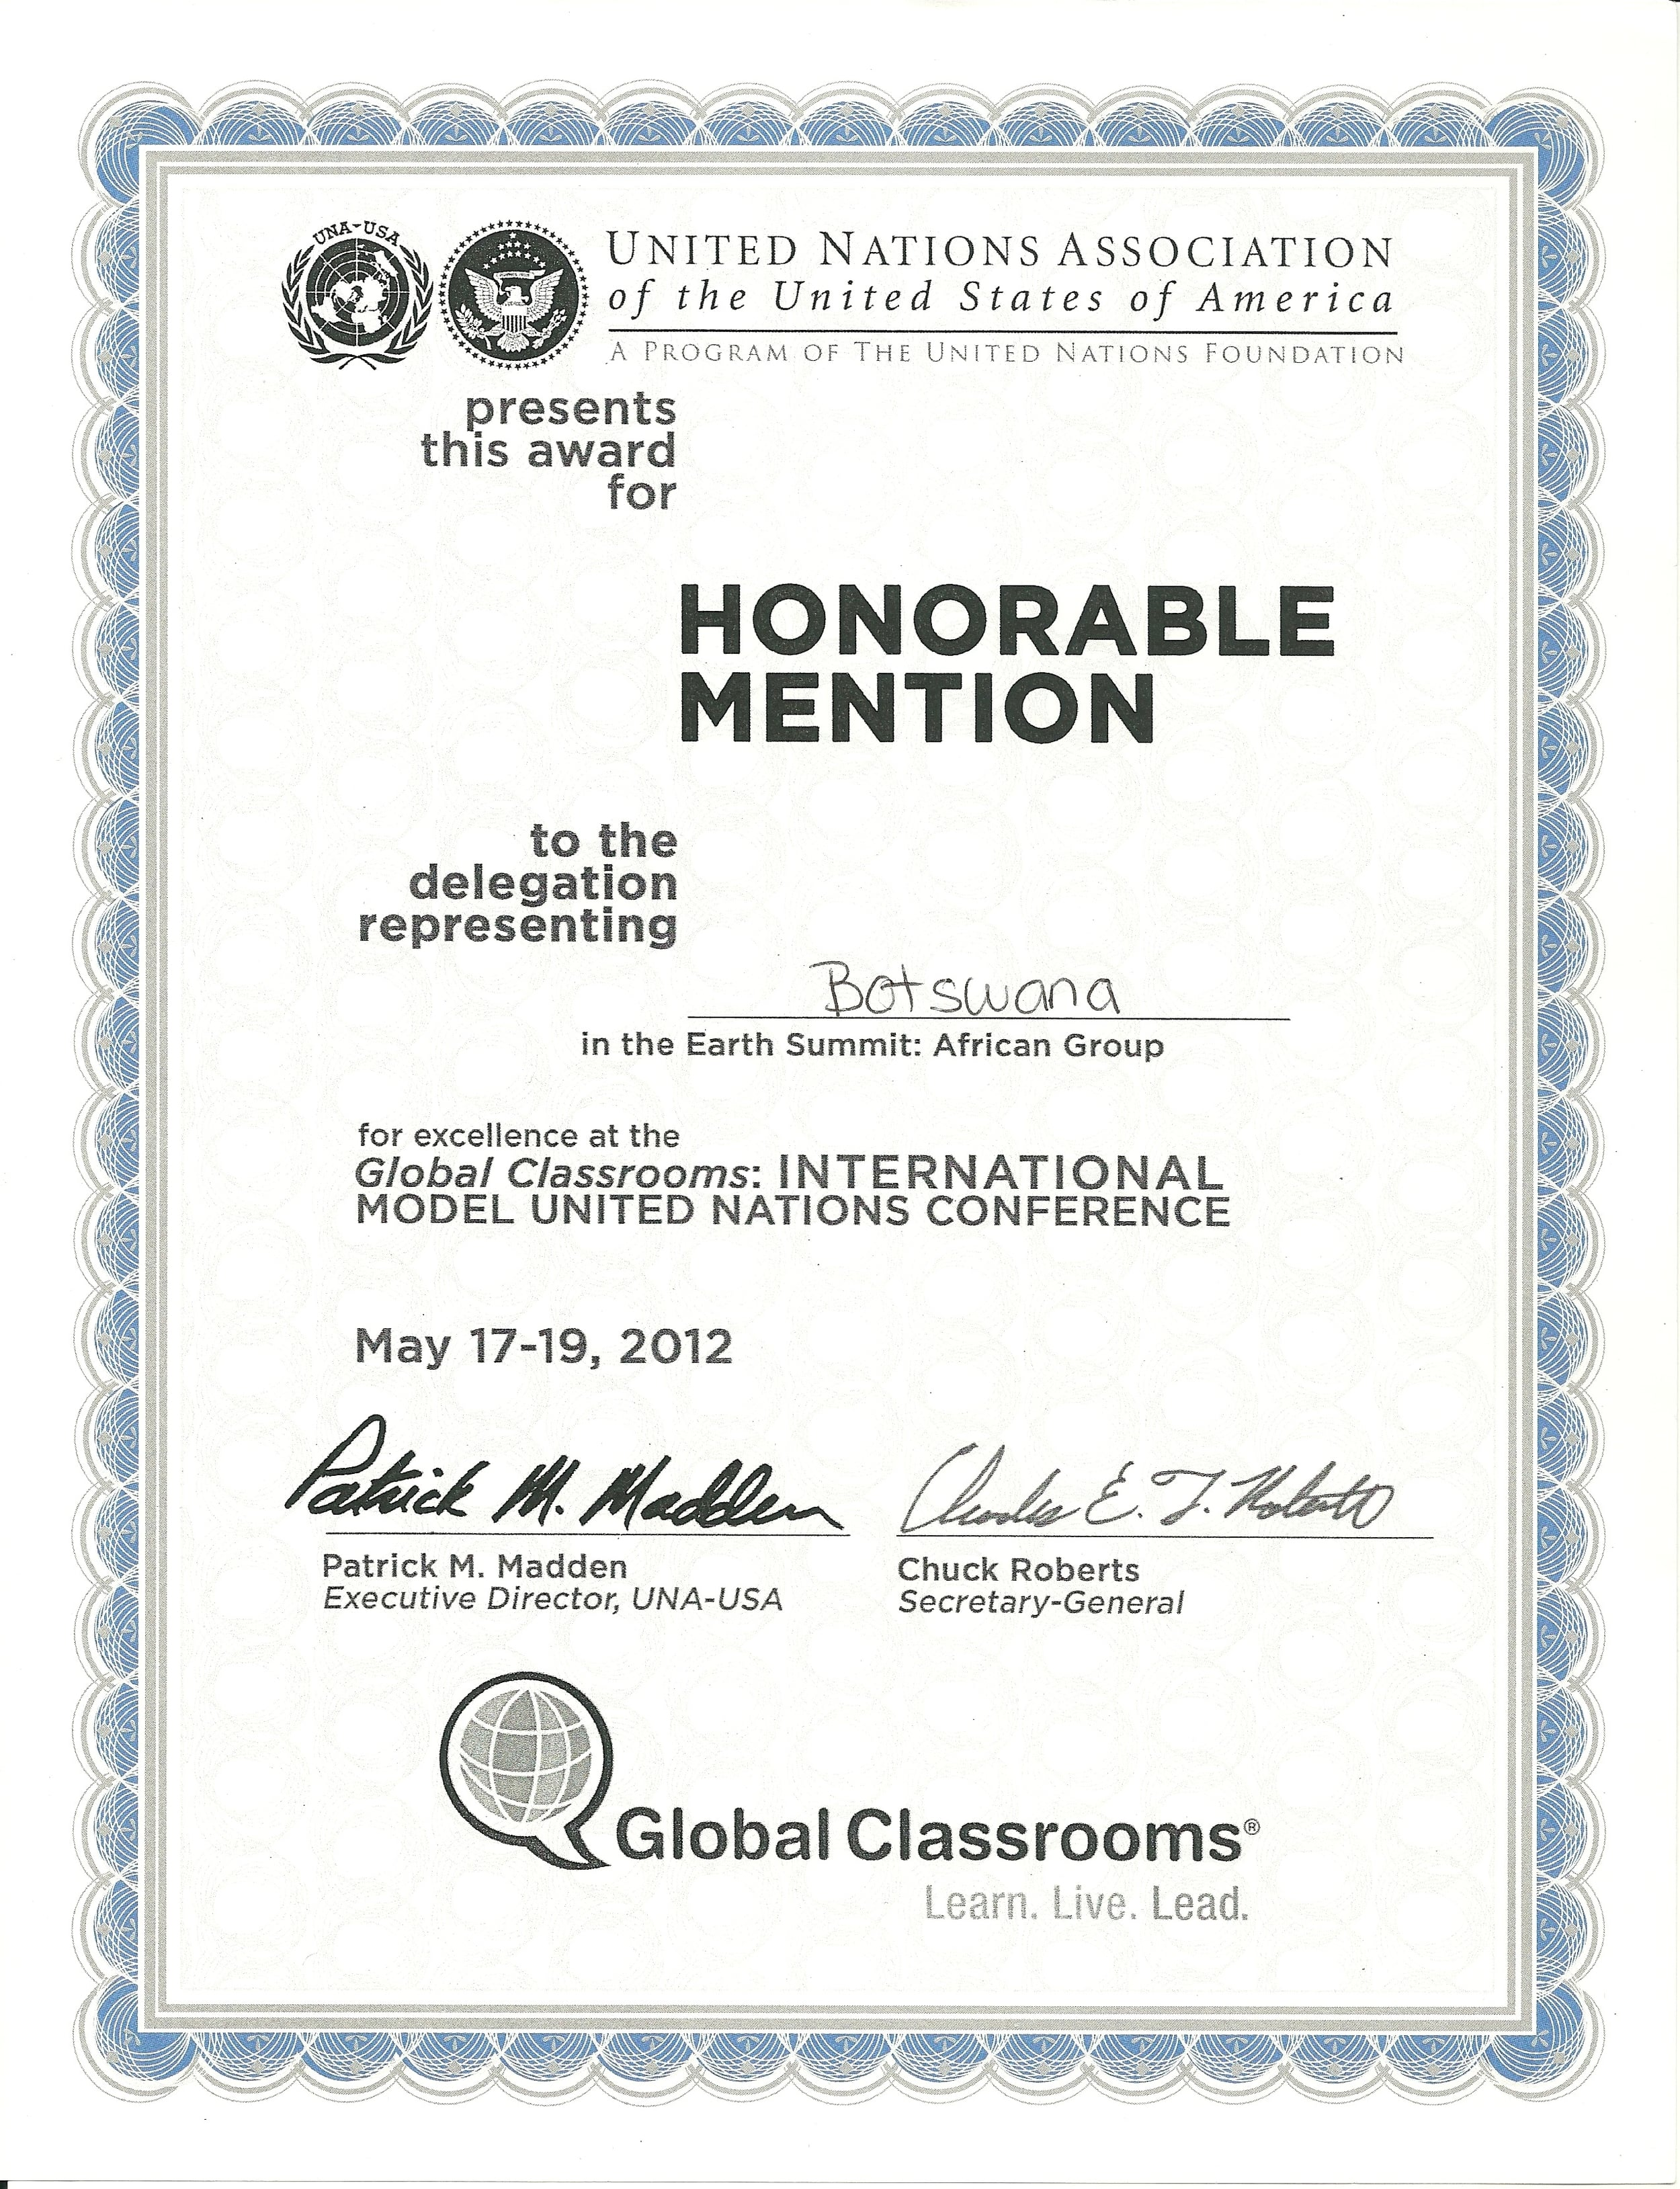 Global Classrooms International Model United Nations